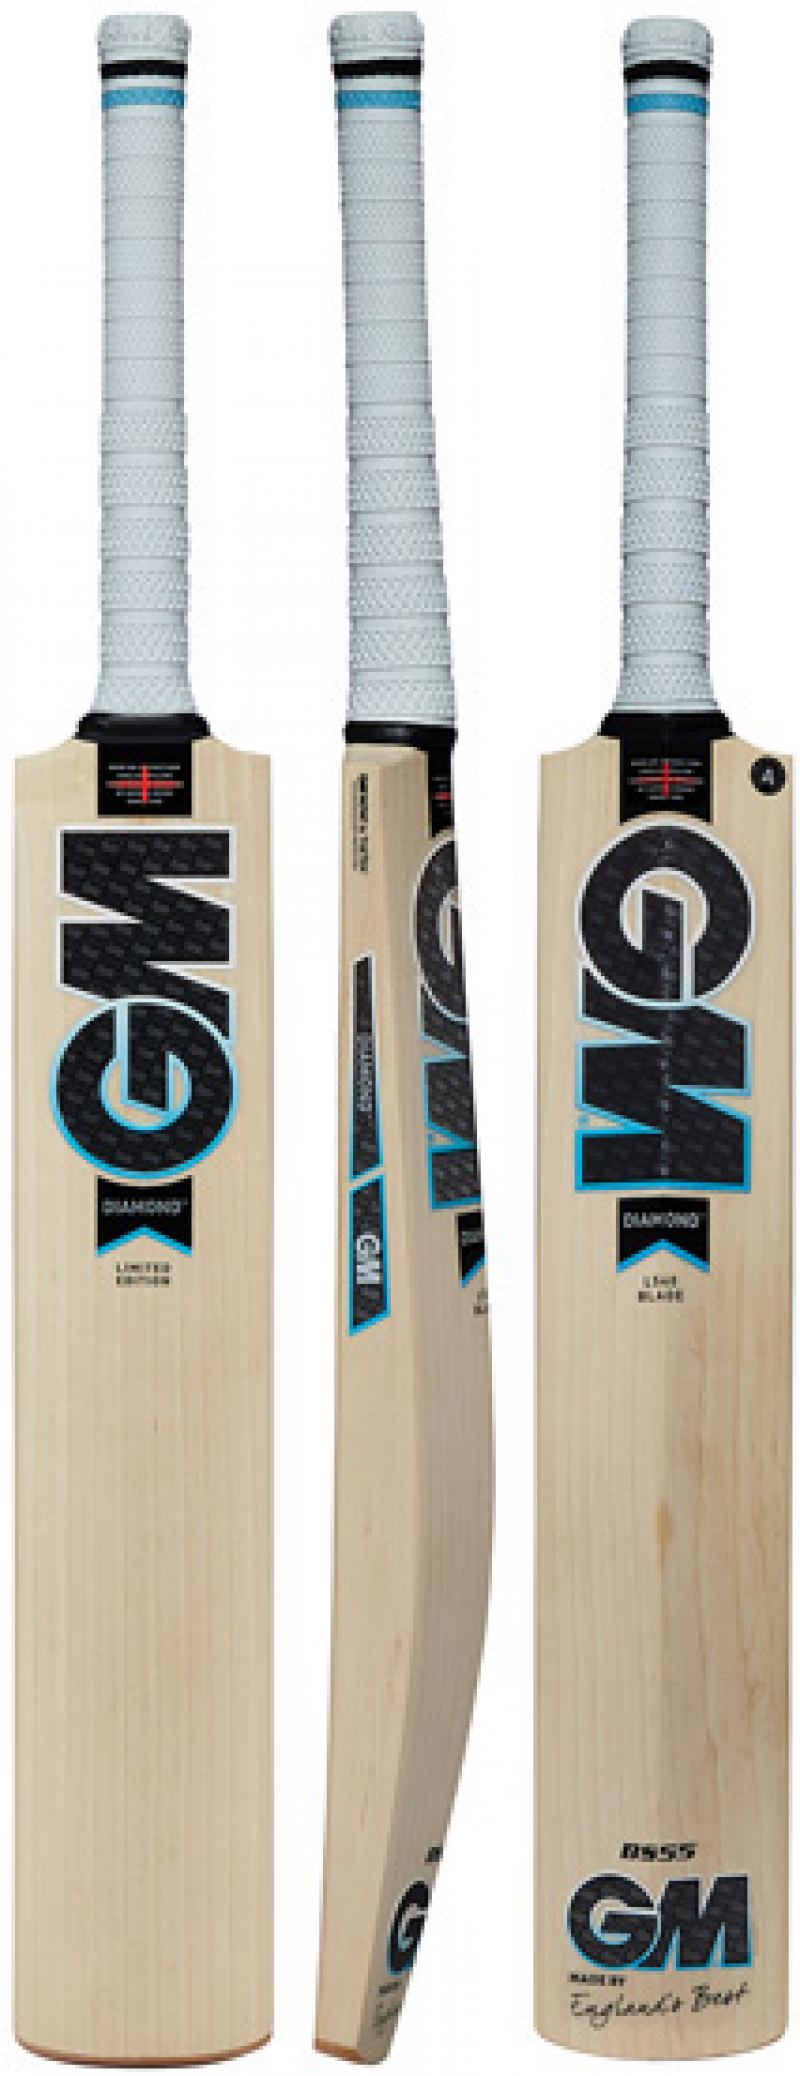 Gunn and Moore Diamond L540 DXM 707 Cricket Bat